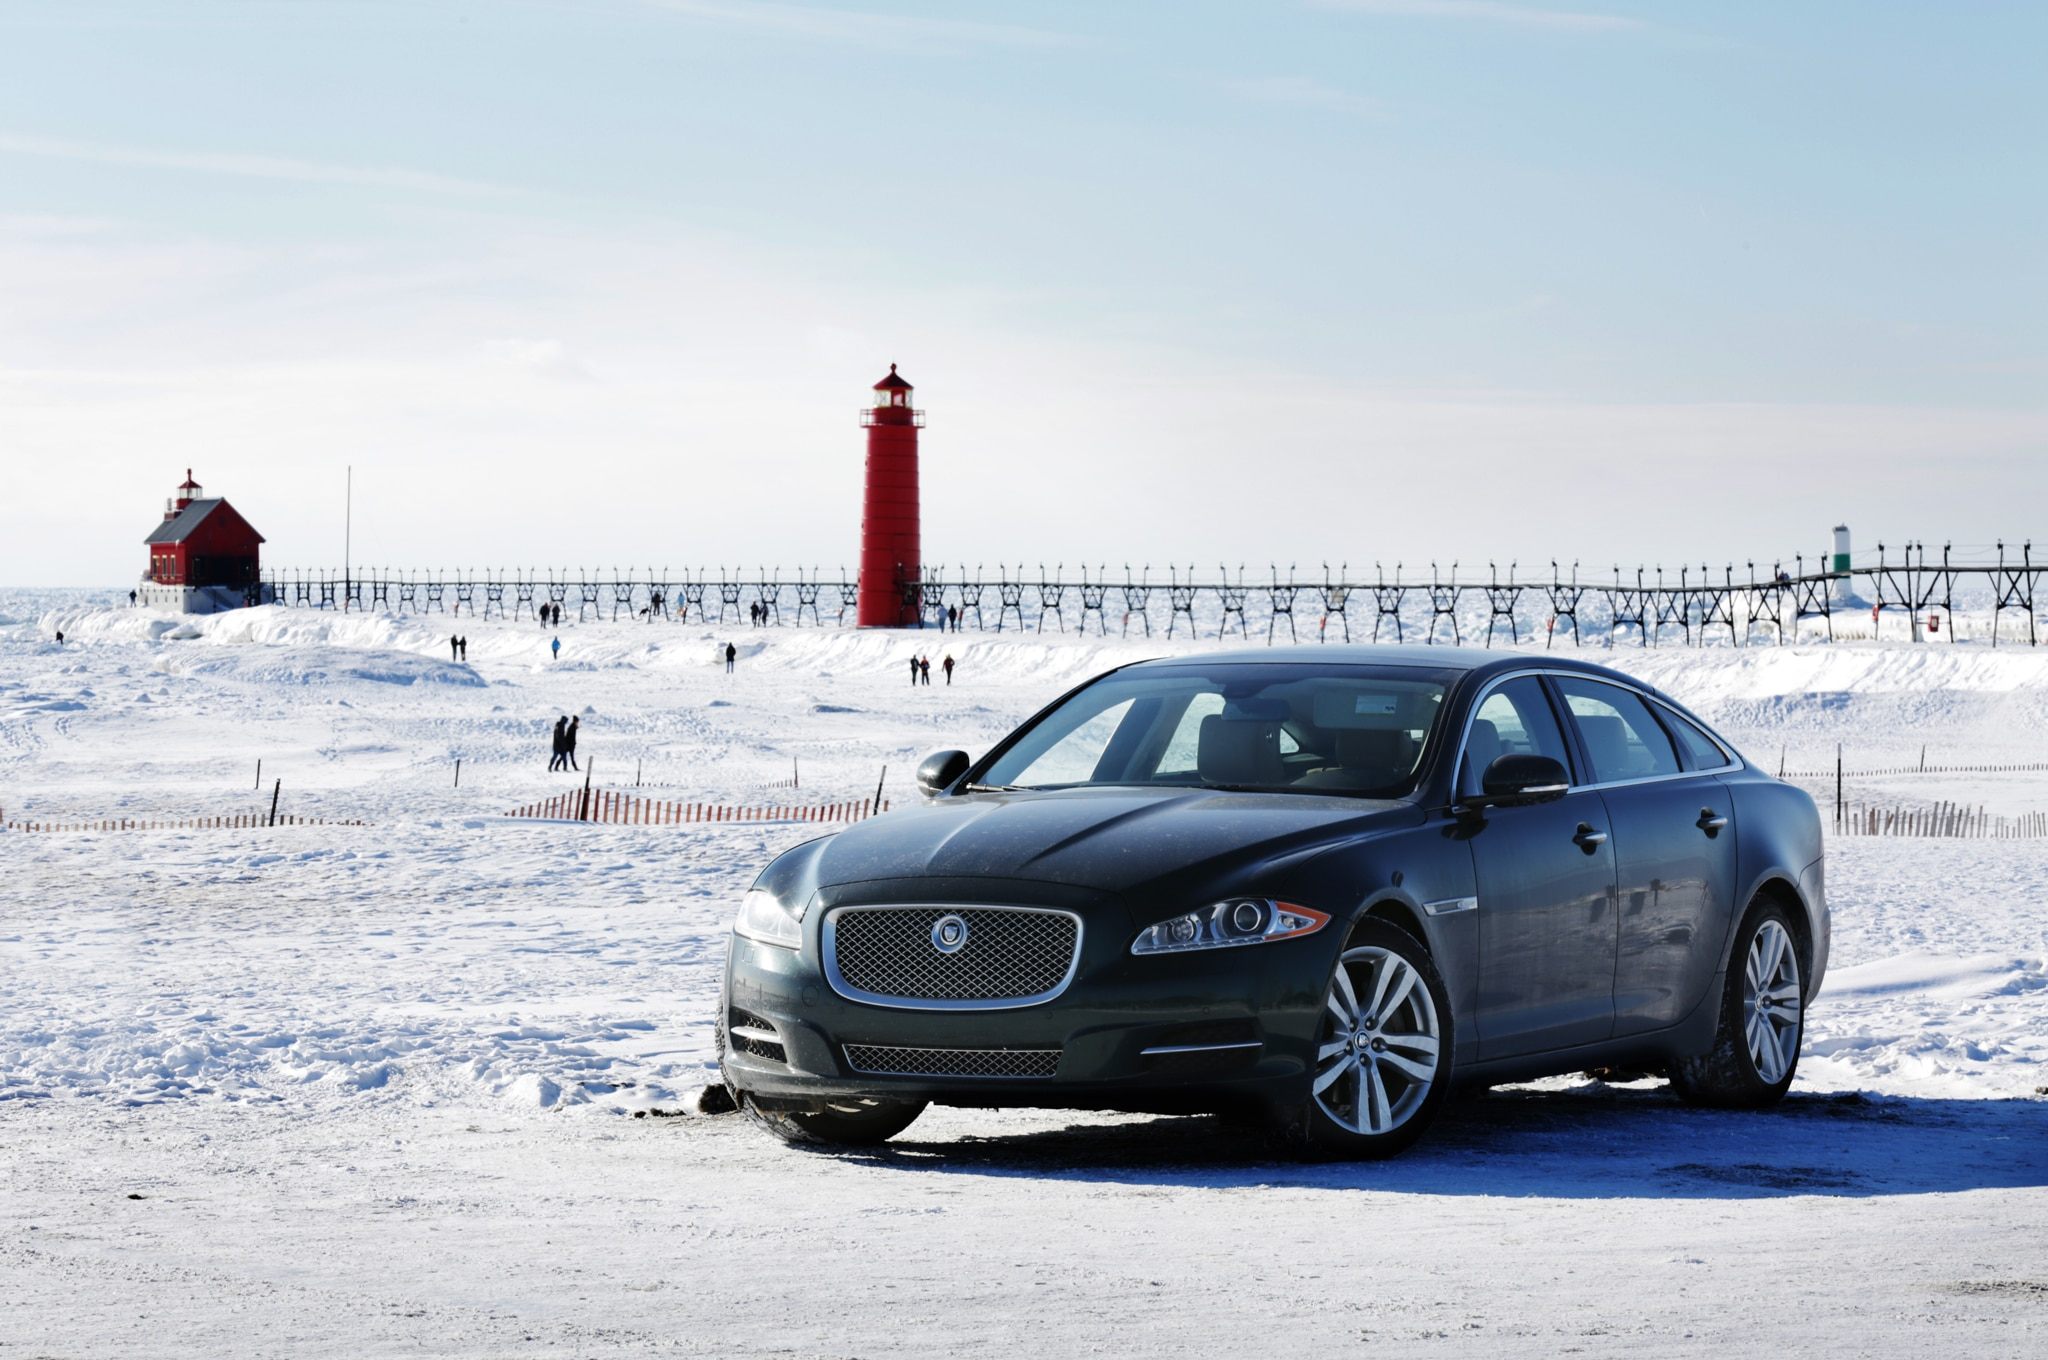 2013 Jaguar Xjl Front Grand Haven 021